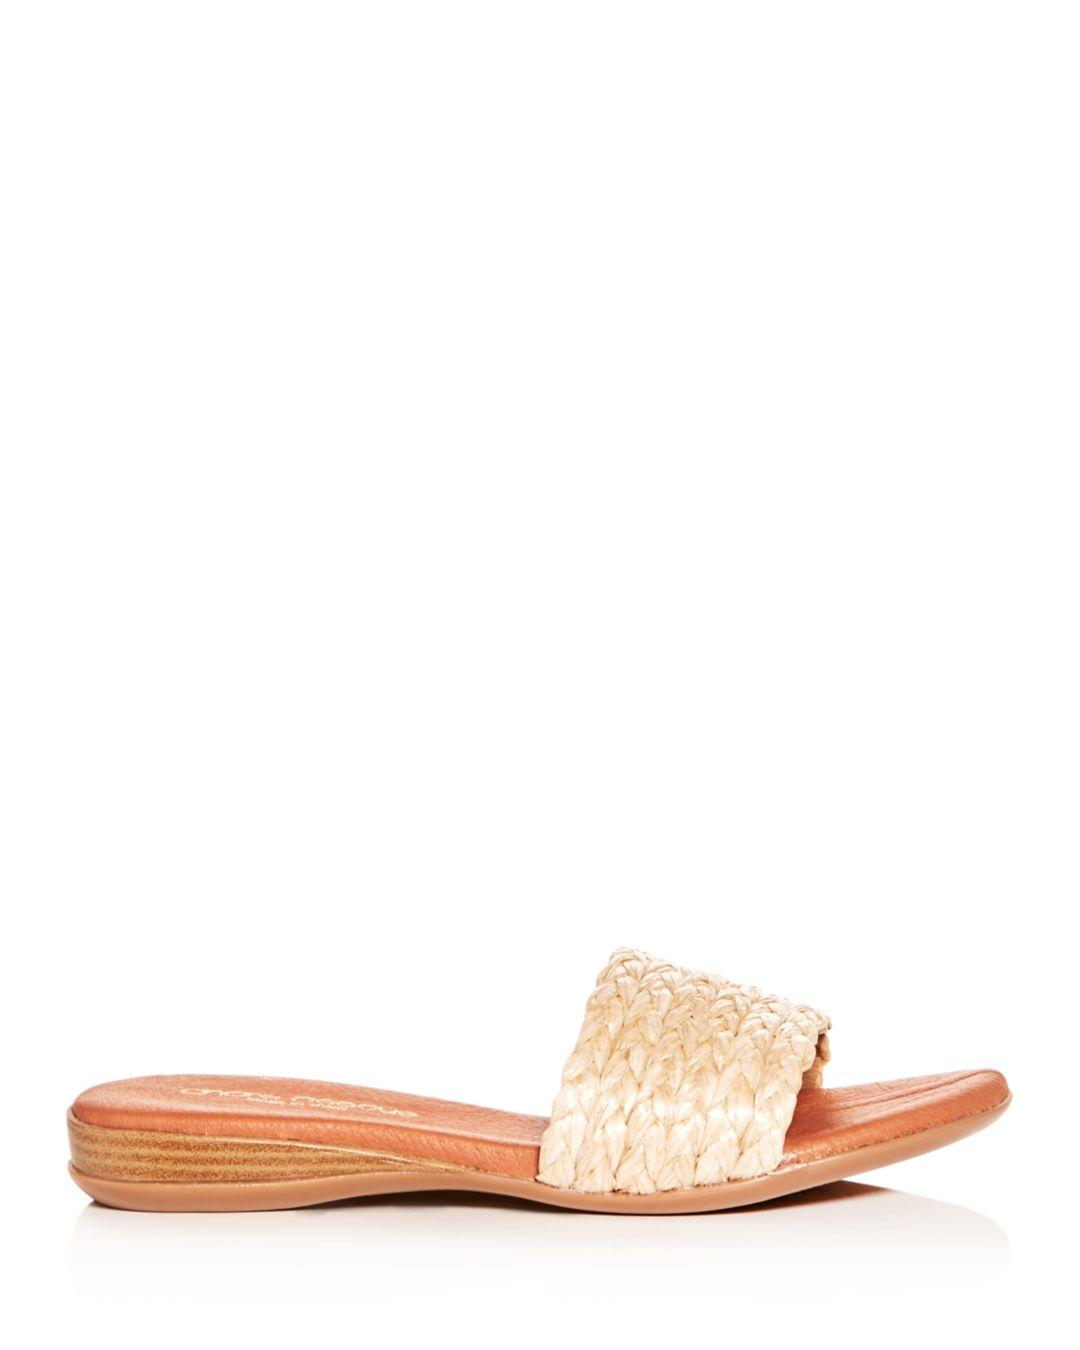 ca0a3f613102f9 Andre Assous Women s Nahala Woven Slide Sandals in Natural - Lyst